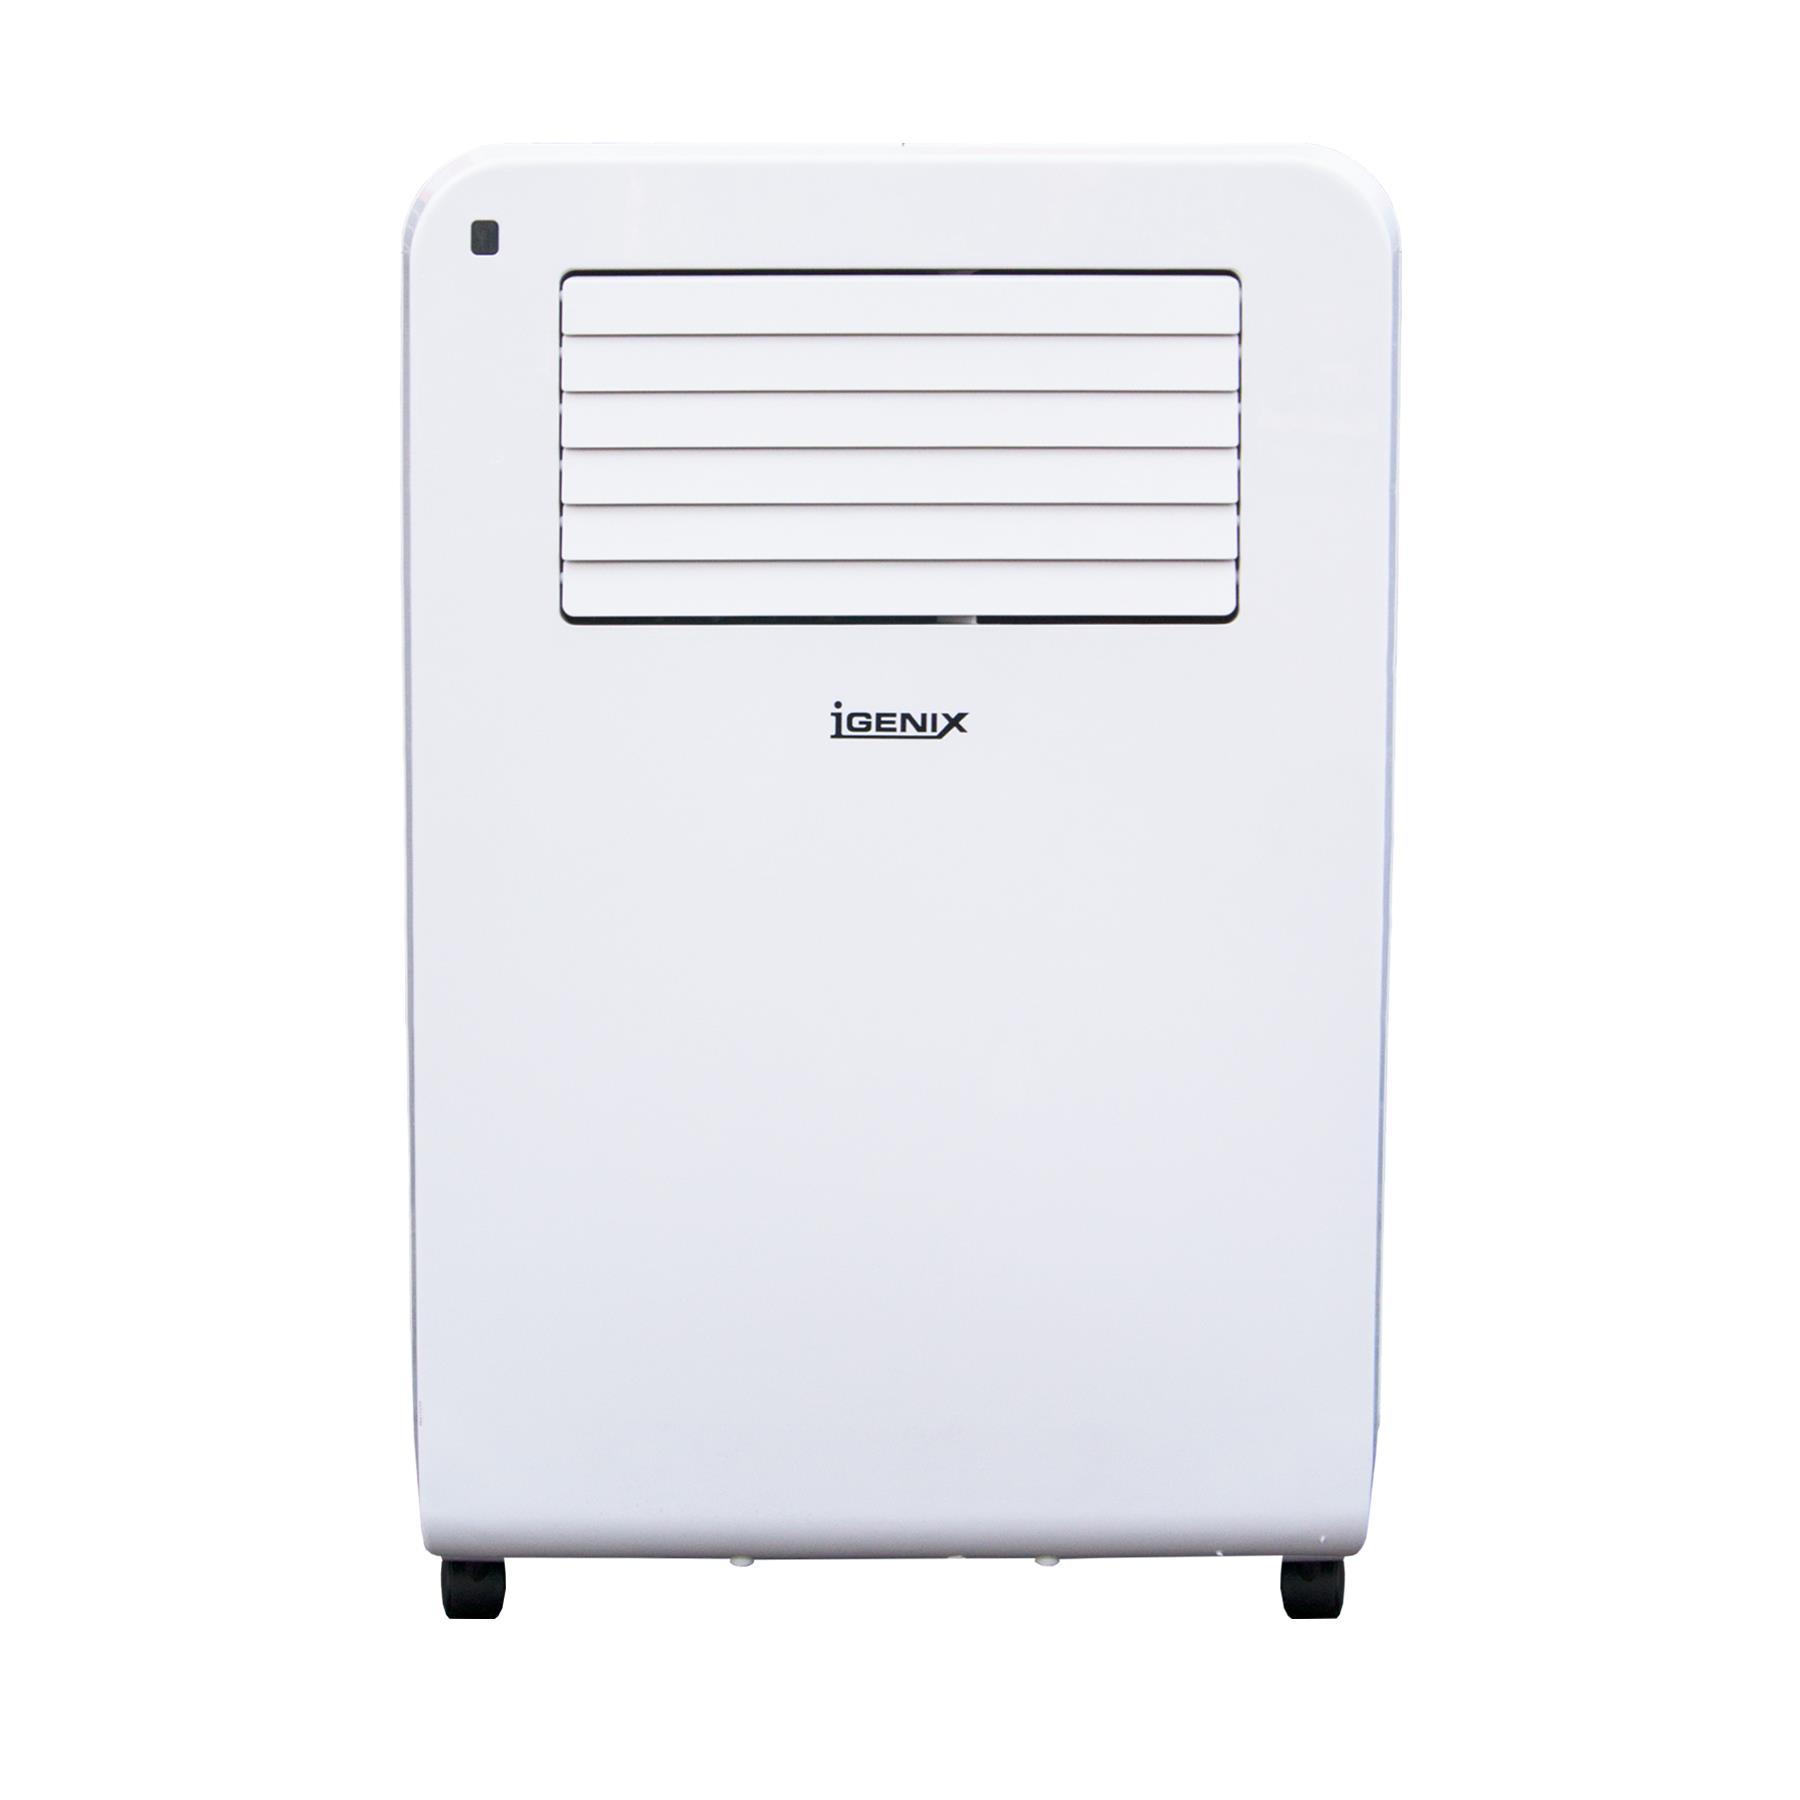 #4F5A7C Igenix IG9903 11 500btu Portable Air Conditioning Unit  Highly Rated 5899 Portable Cooling And Heating Units wallpapers with 1800x1800 px on helpvideos.info - Air Conditioners, Air Coolers and more